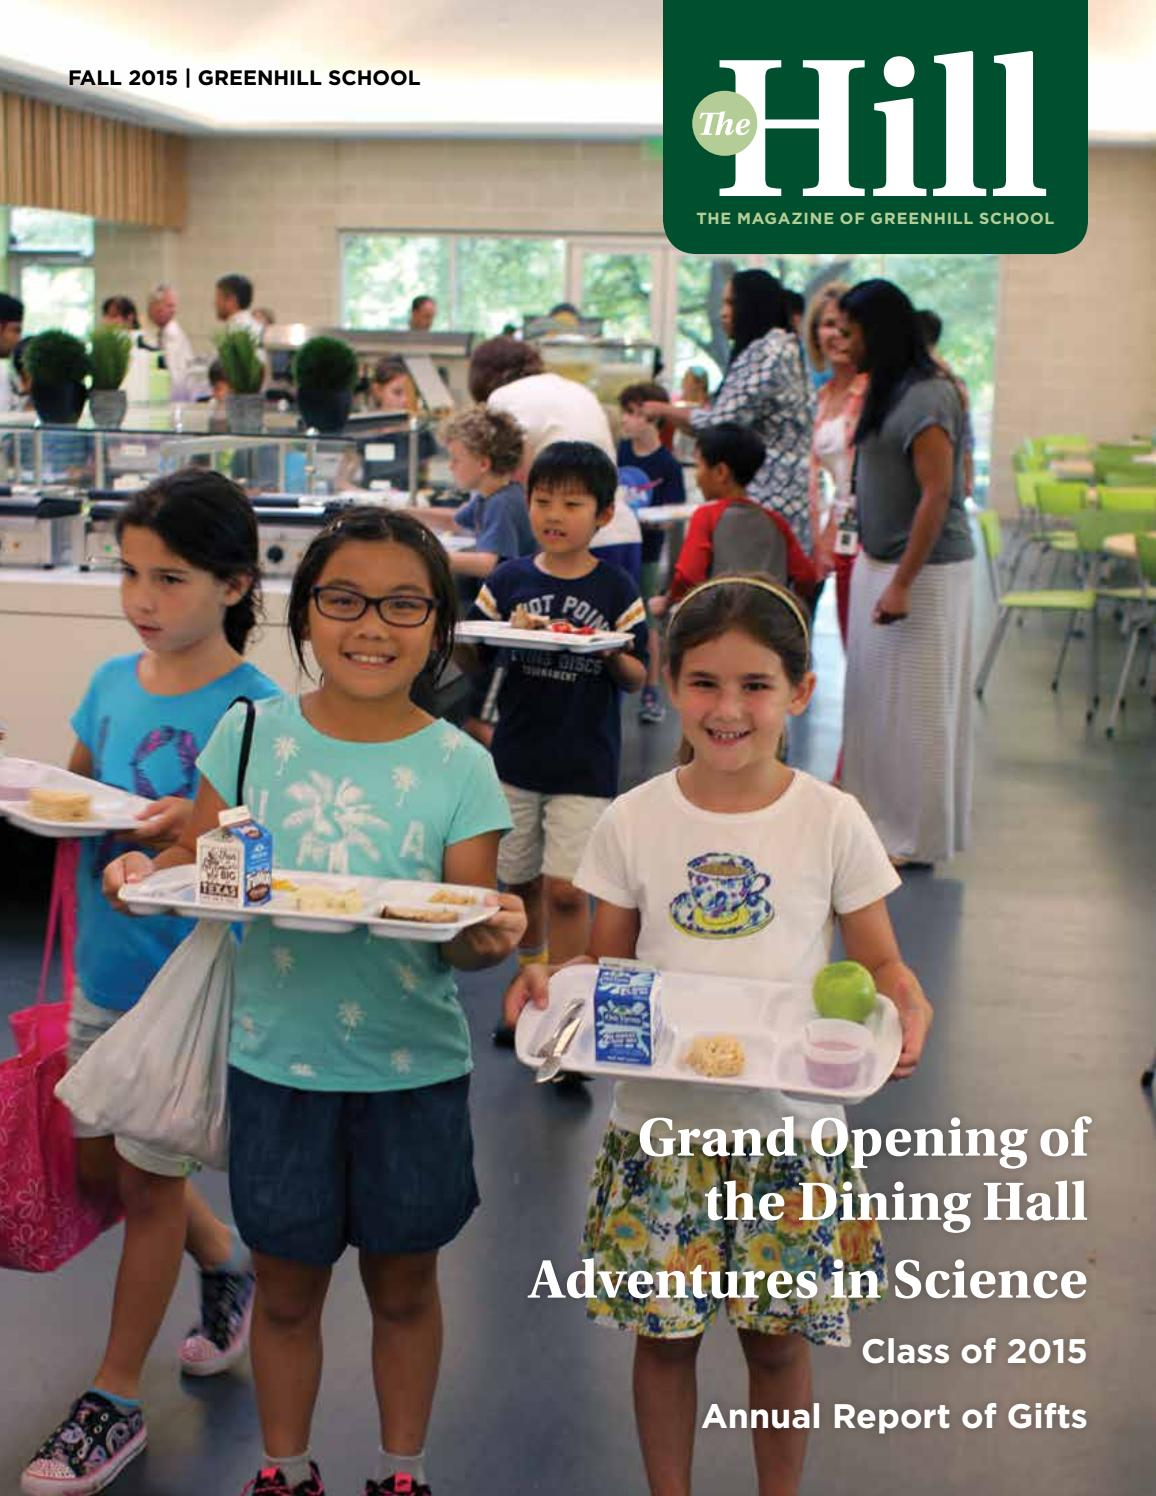 The Hill 2015 2016 Fall By Greenhill School Issuu Clip of marcus parks' song trlt.mp3. greenhill school